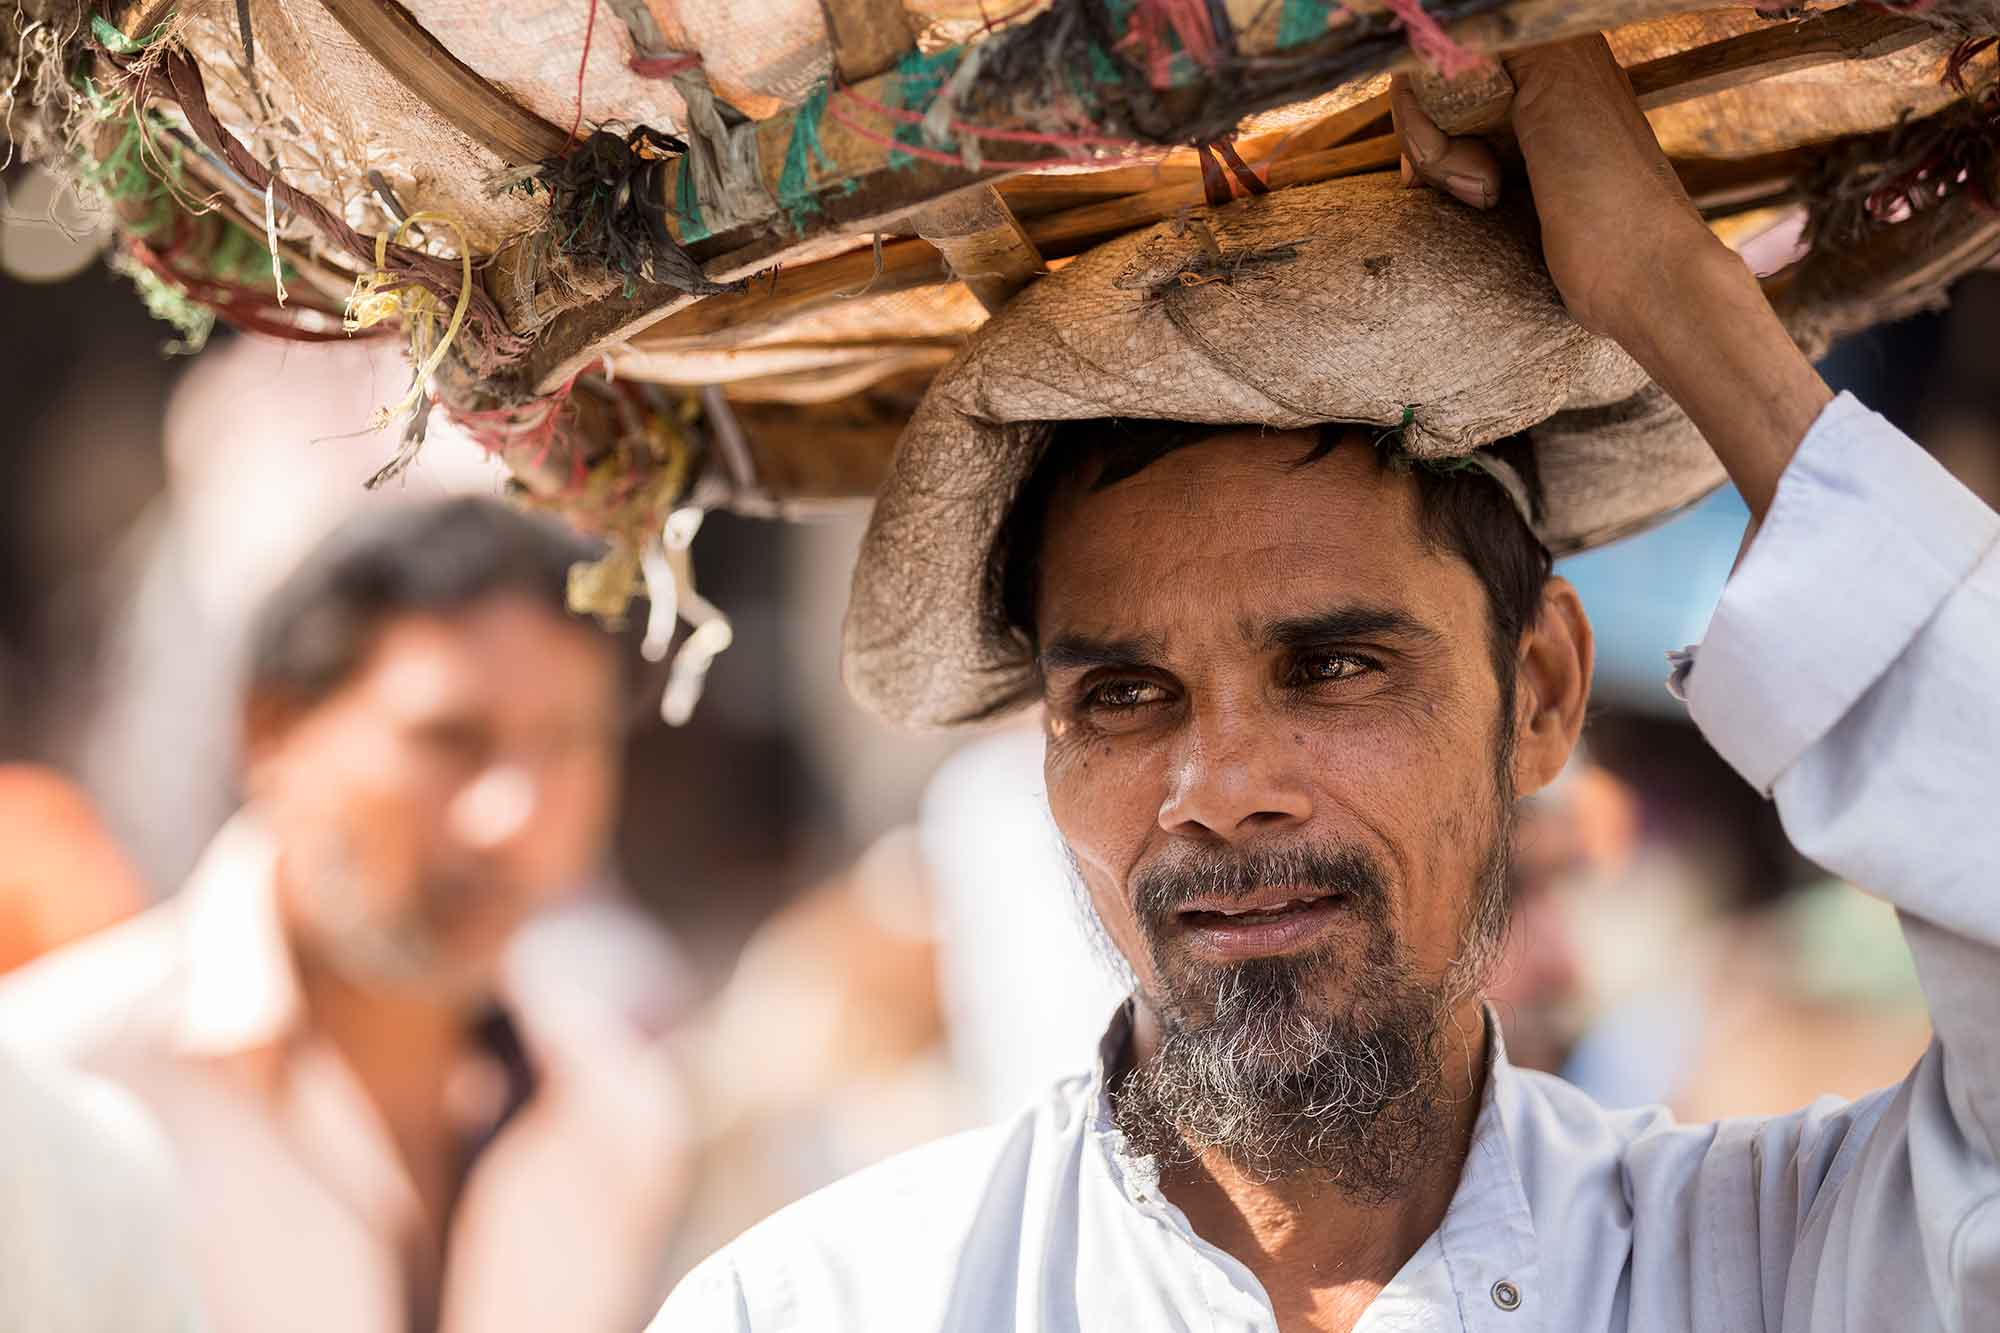 portrait-Mechhua-Fruit-Market-worker-kolkata-india-1